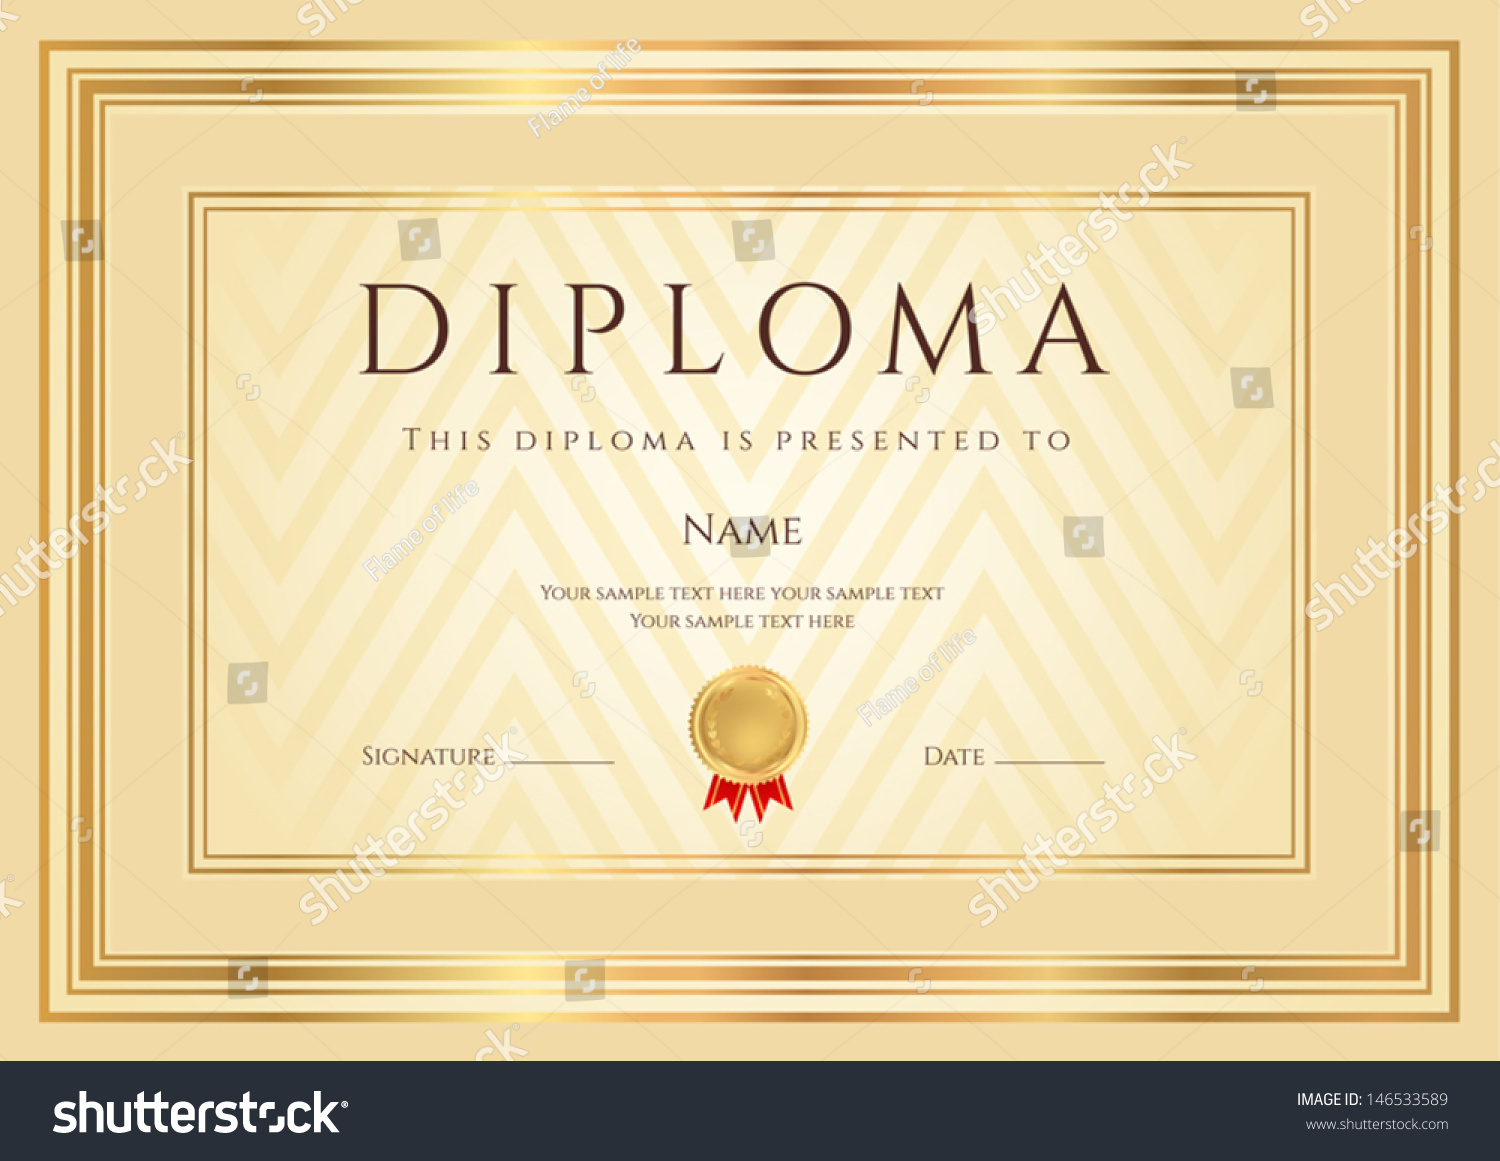 ... for: Certificate of Achievement, Certificate of education, awards